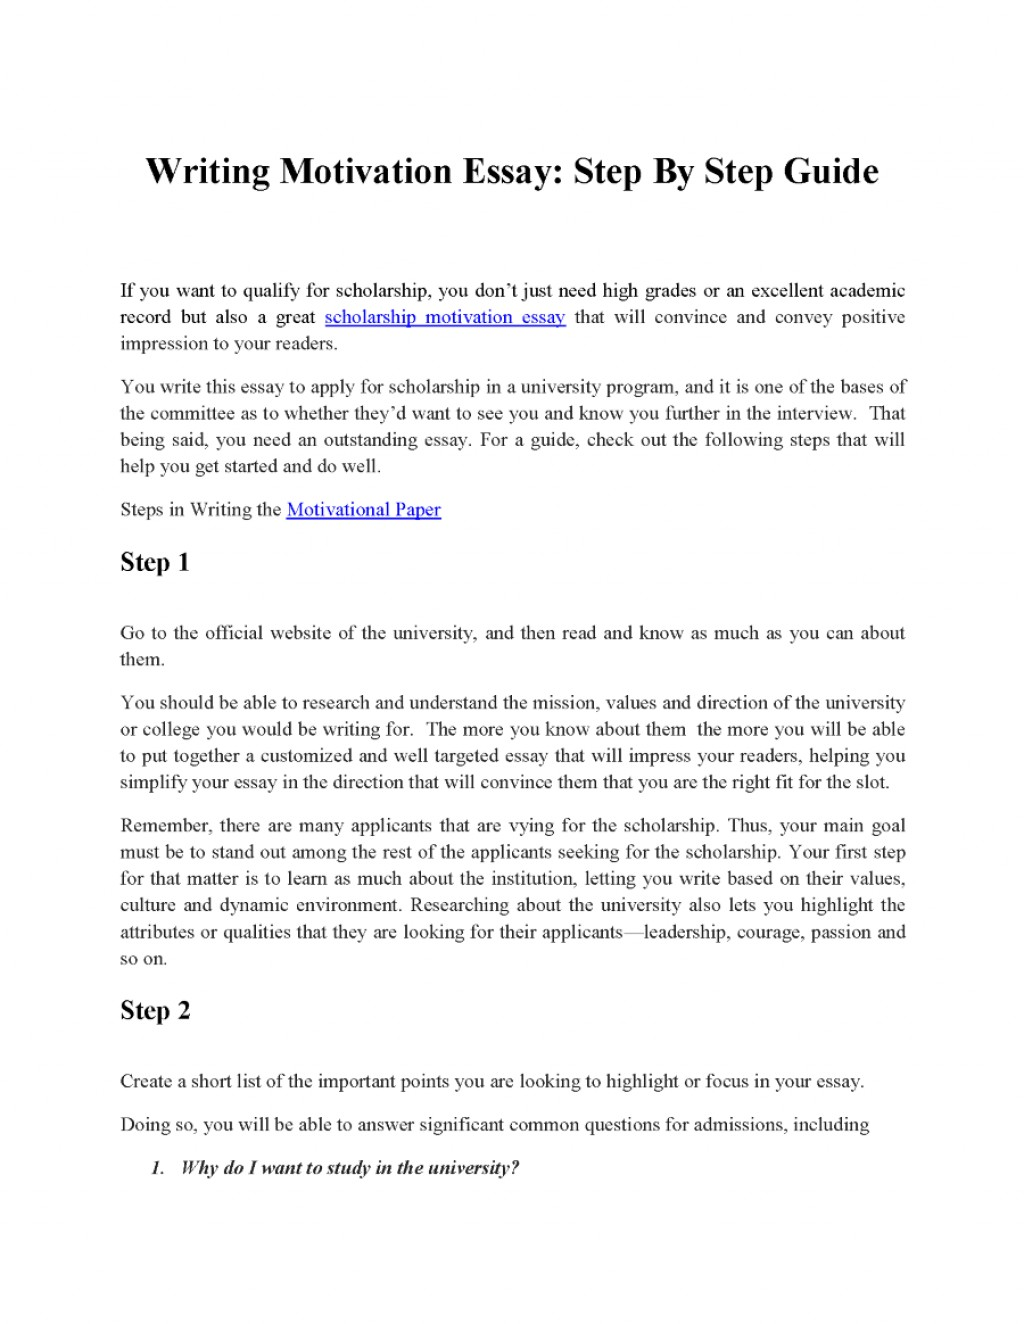 020 Research Paper 2948595 636128784141107500 Slide1 Fs Steps For Writing Unforgettable 10 A In The Markman Pdf To Write Basic Large